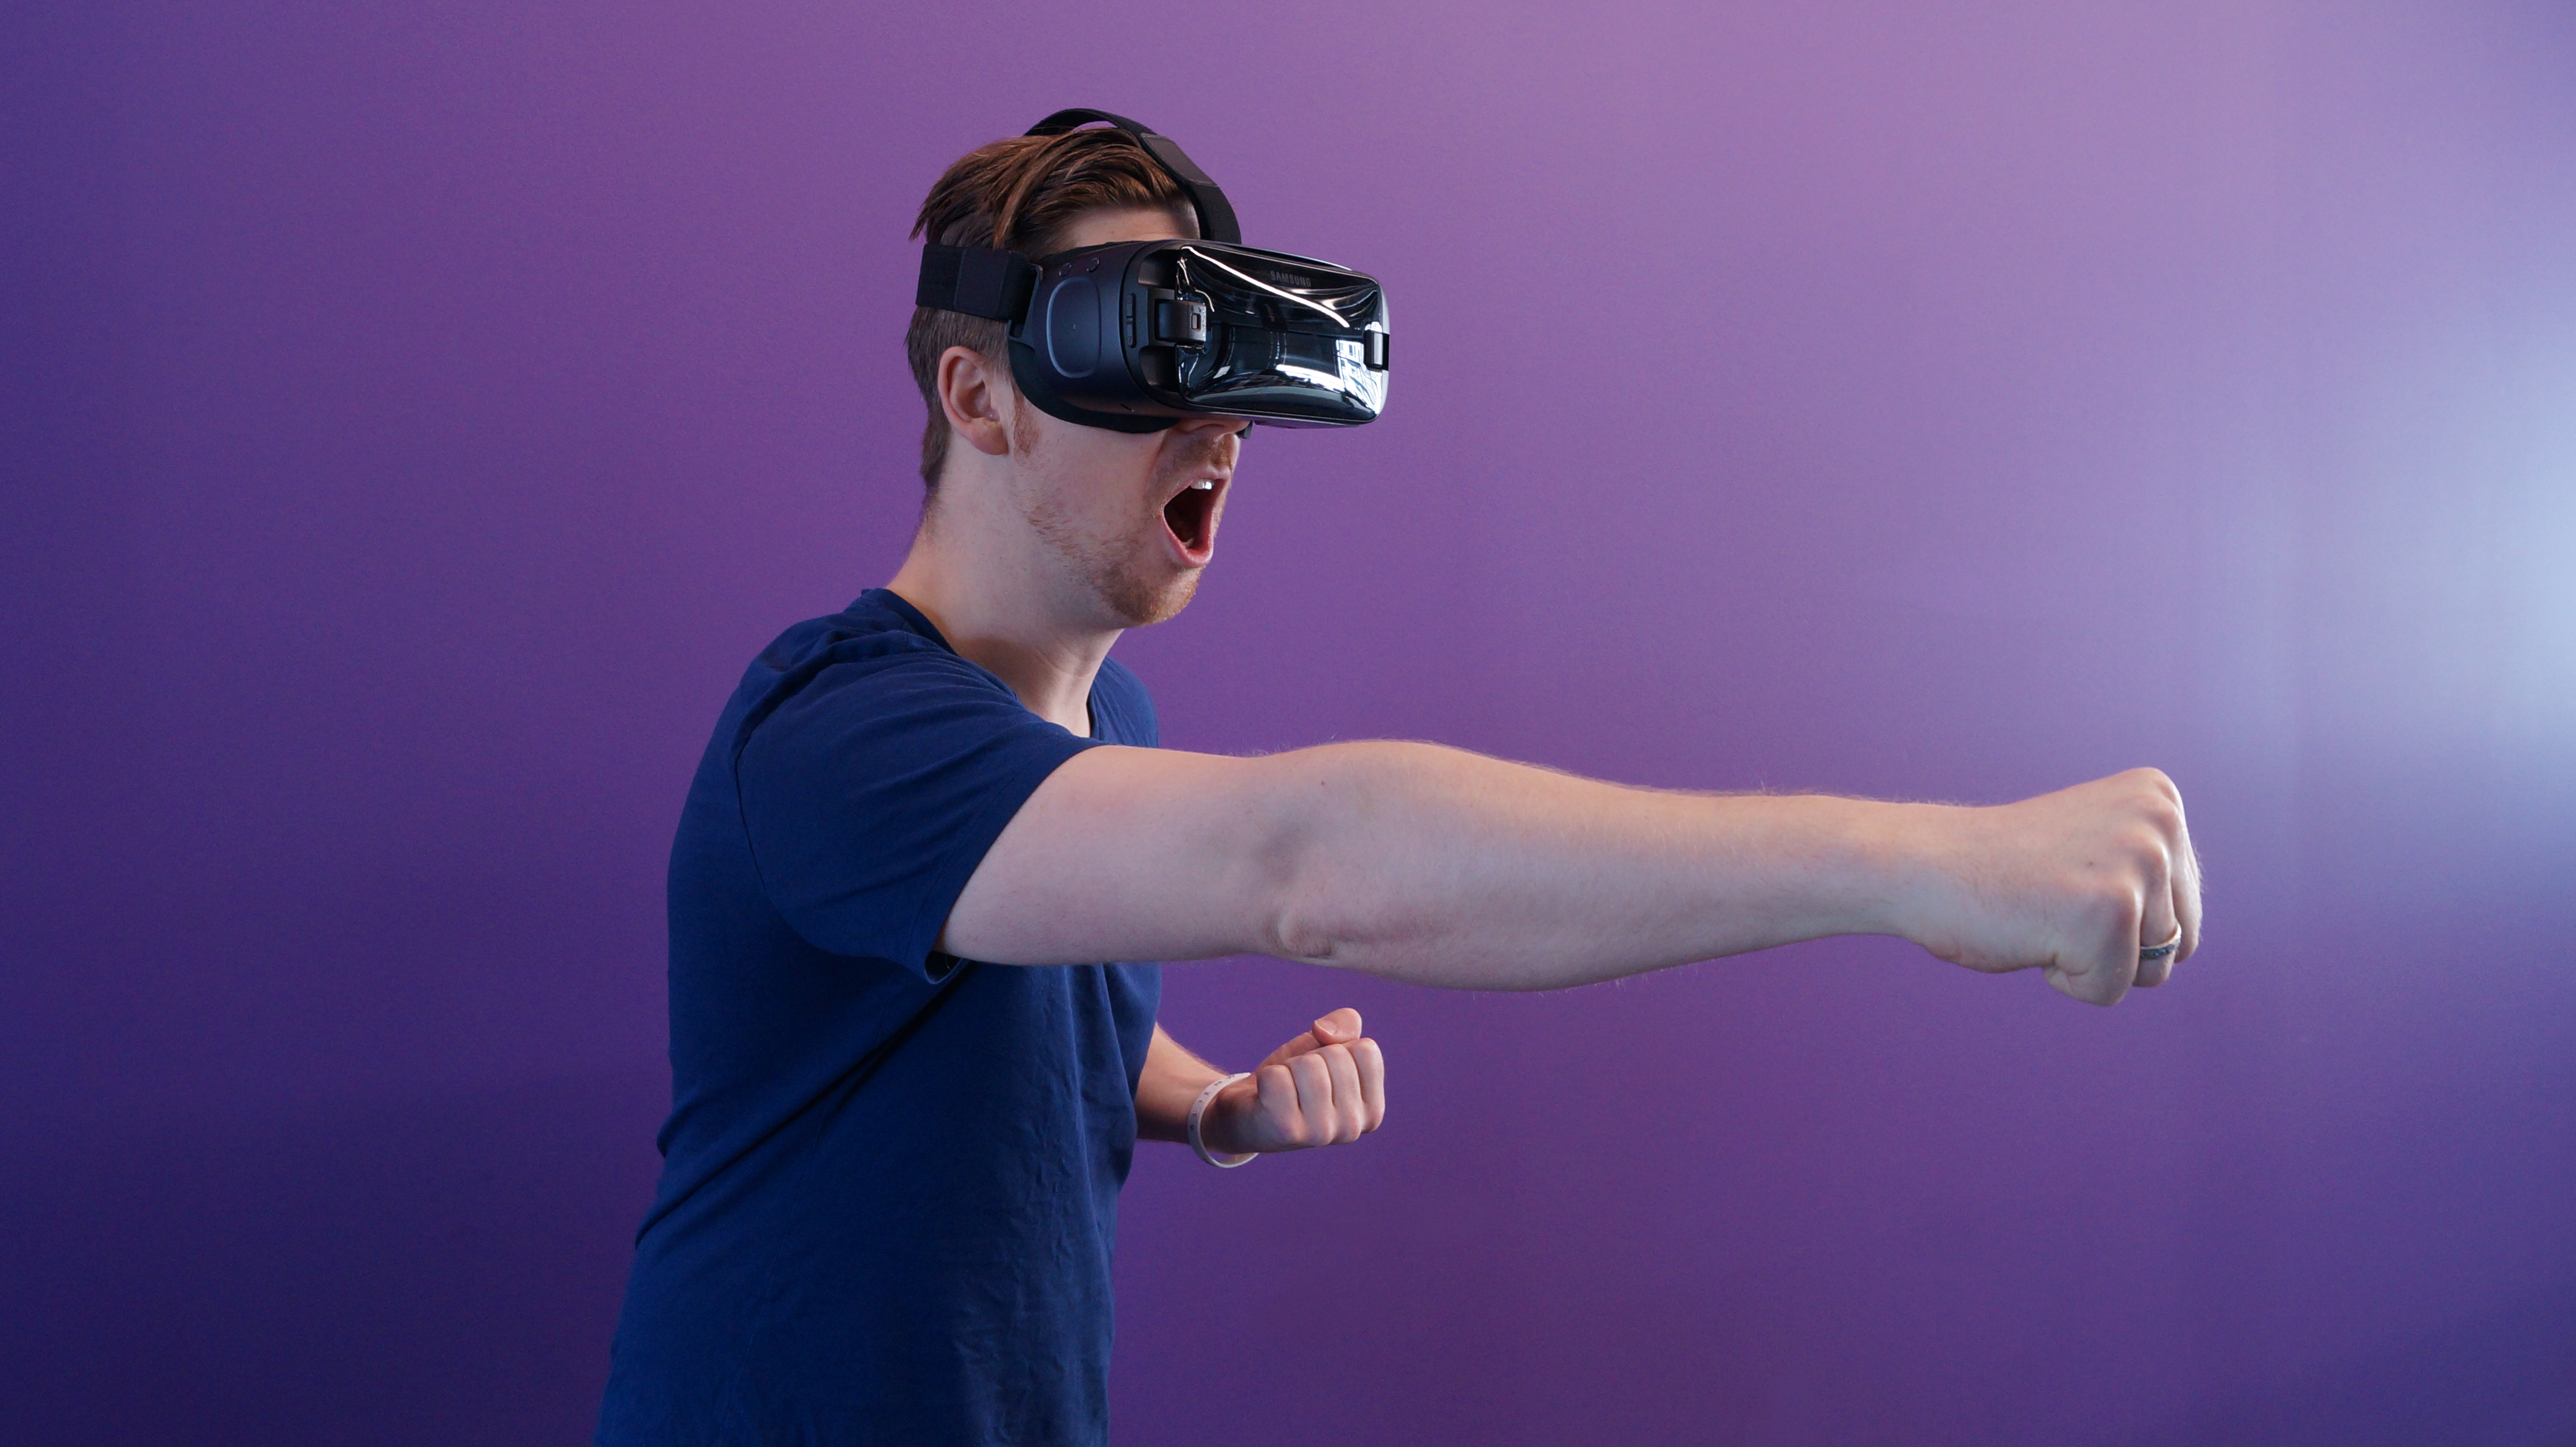 Man punching in the air while wearing VR goggles.